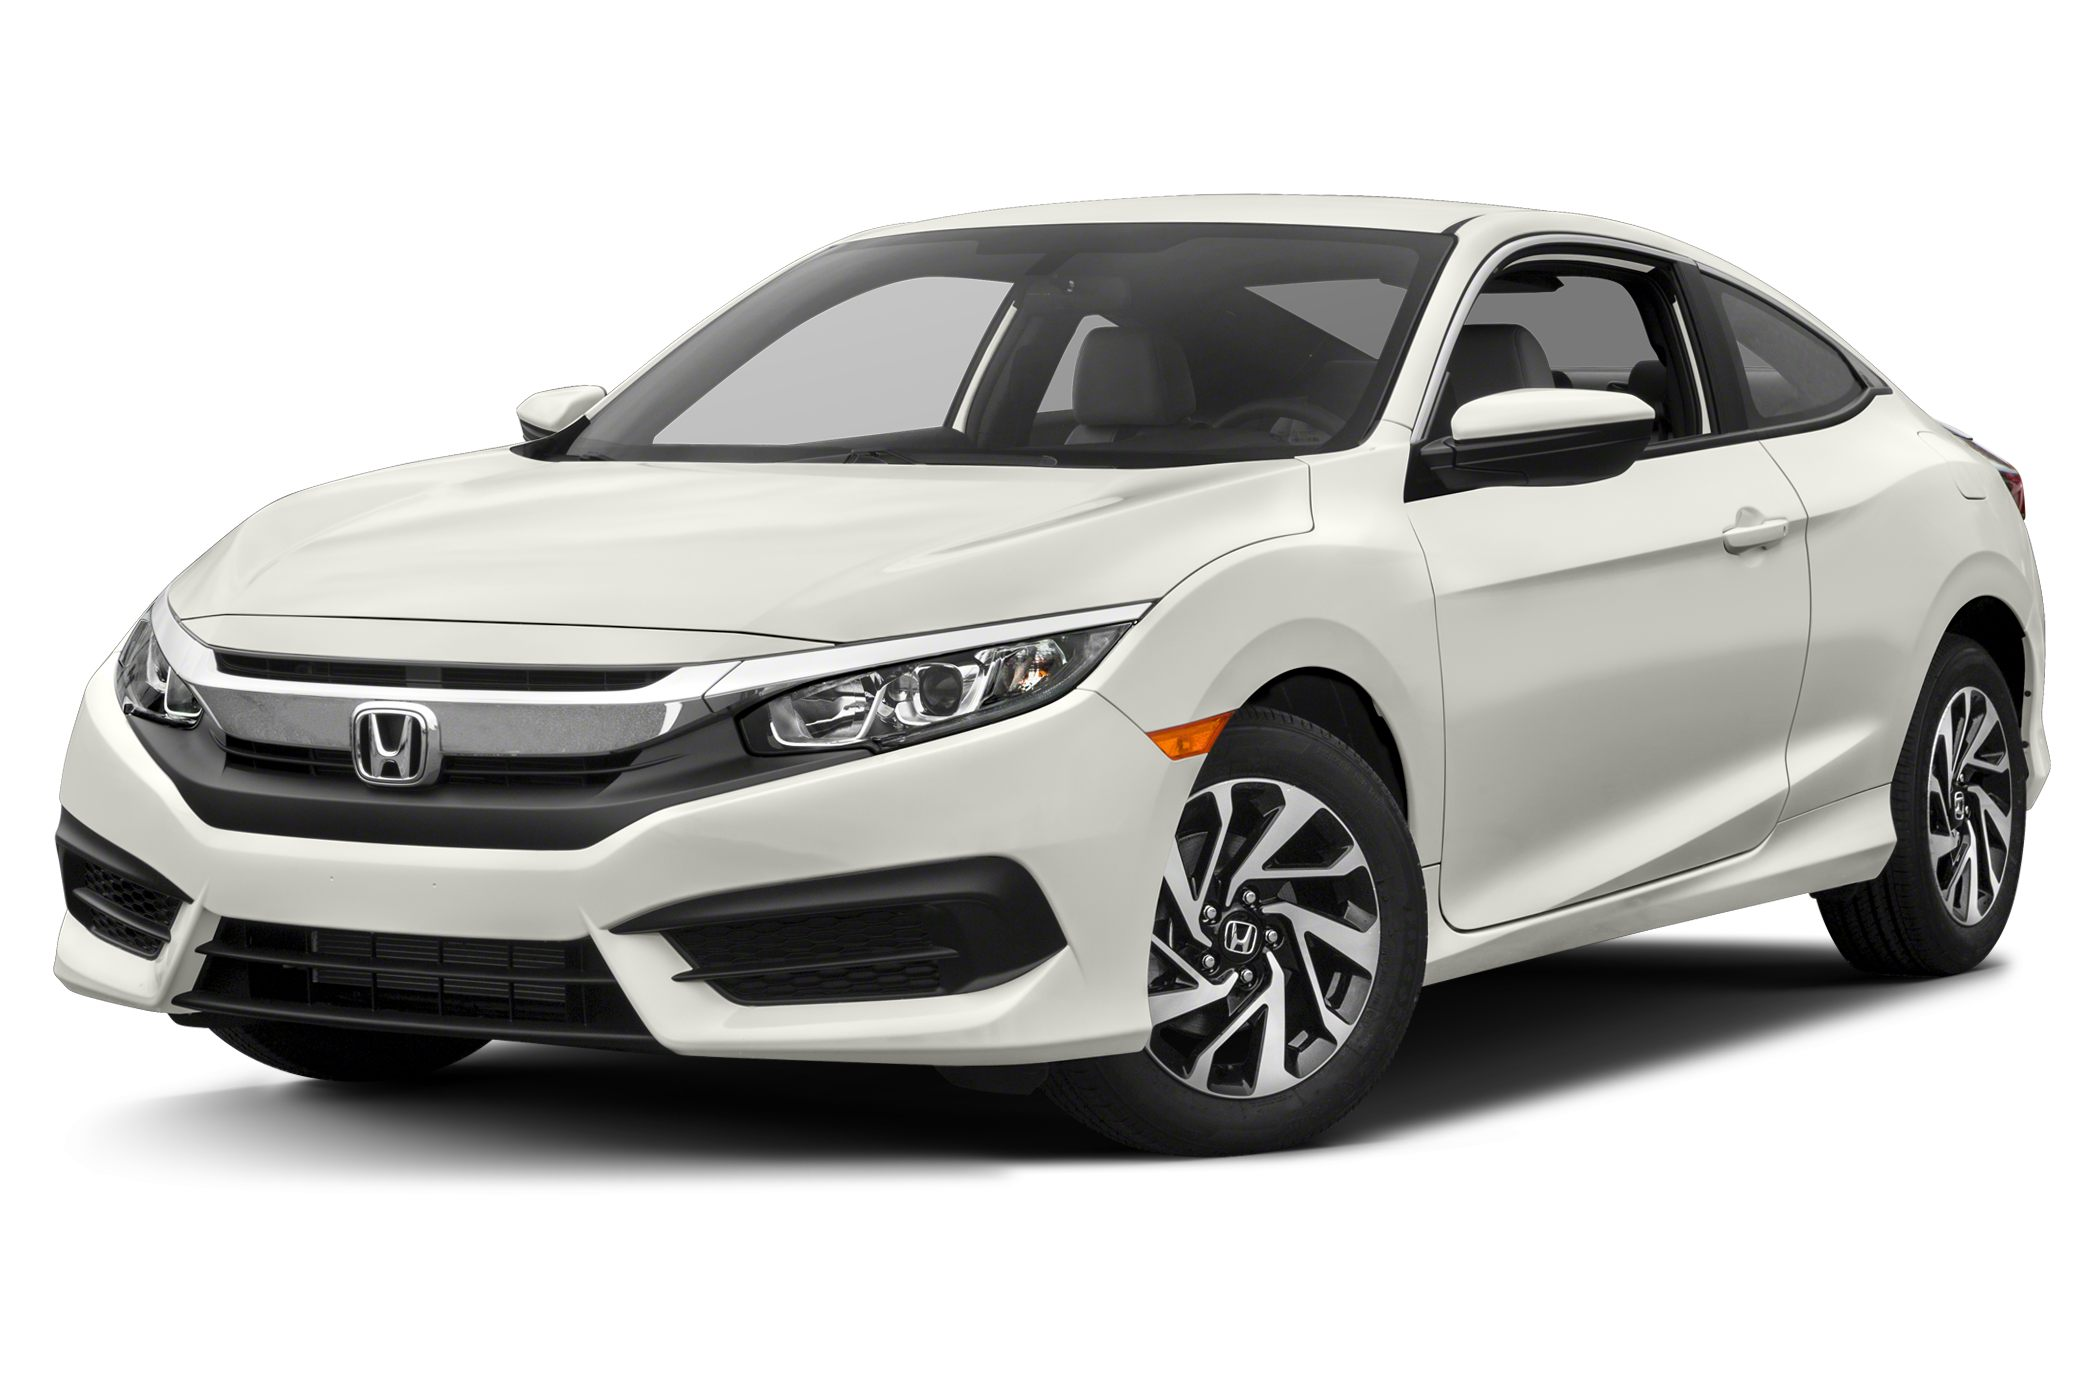 2016 Honda Civic LX Best color The Diamond Valley Honda EDGE Buy a new Honda from Diamond Valley